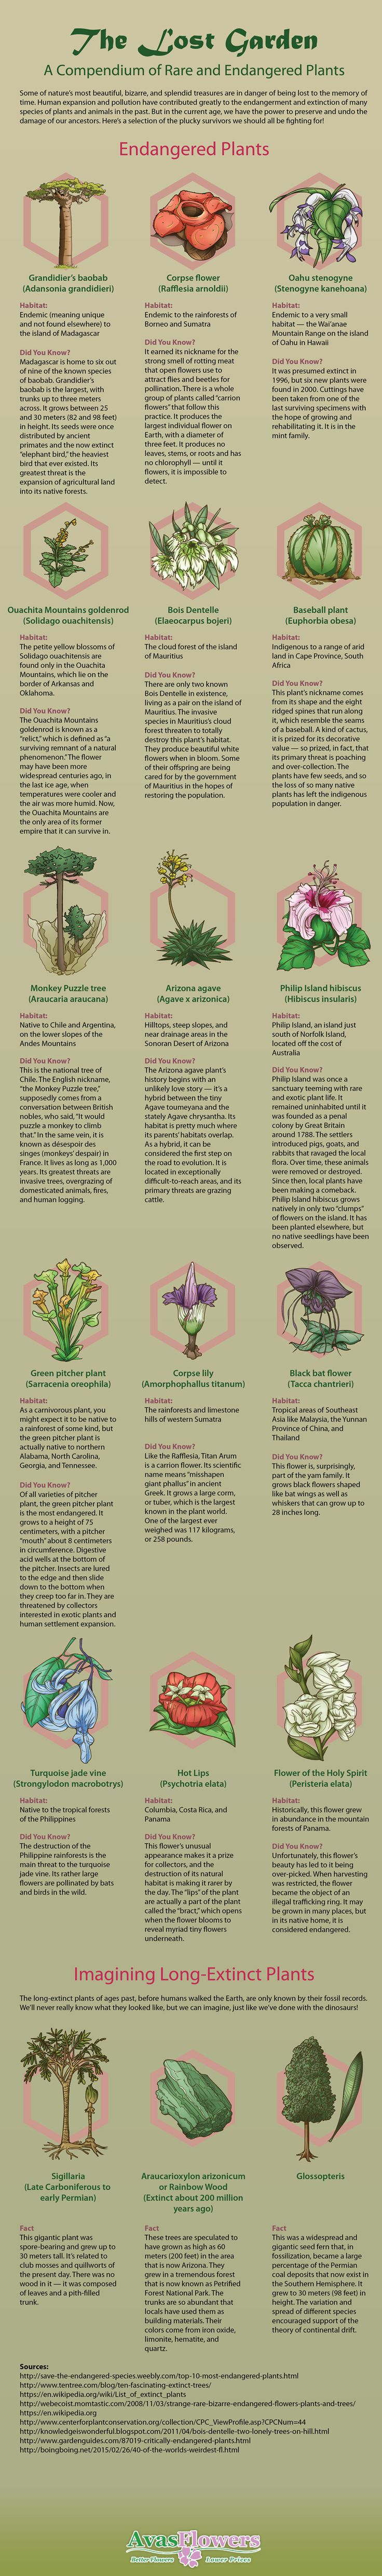 The Lost Garden: A Compendium of Rare and Endangered Plants #Infographic #Flowers #Plants